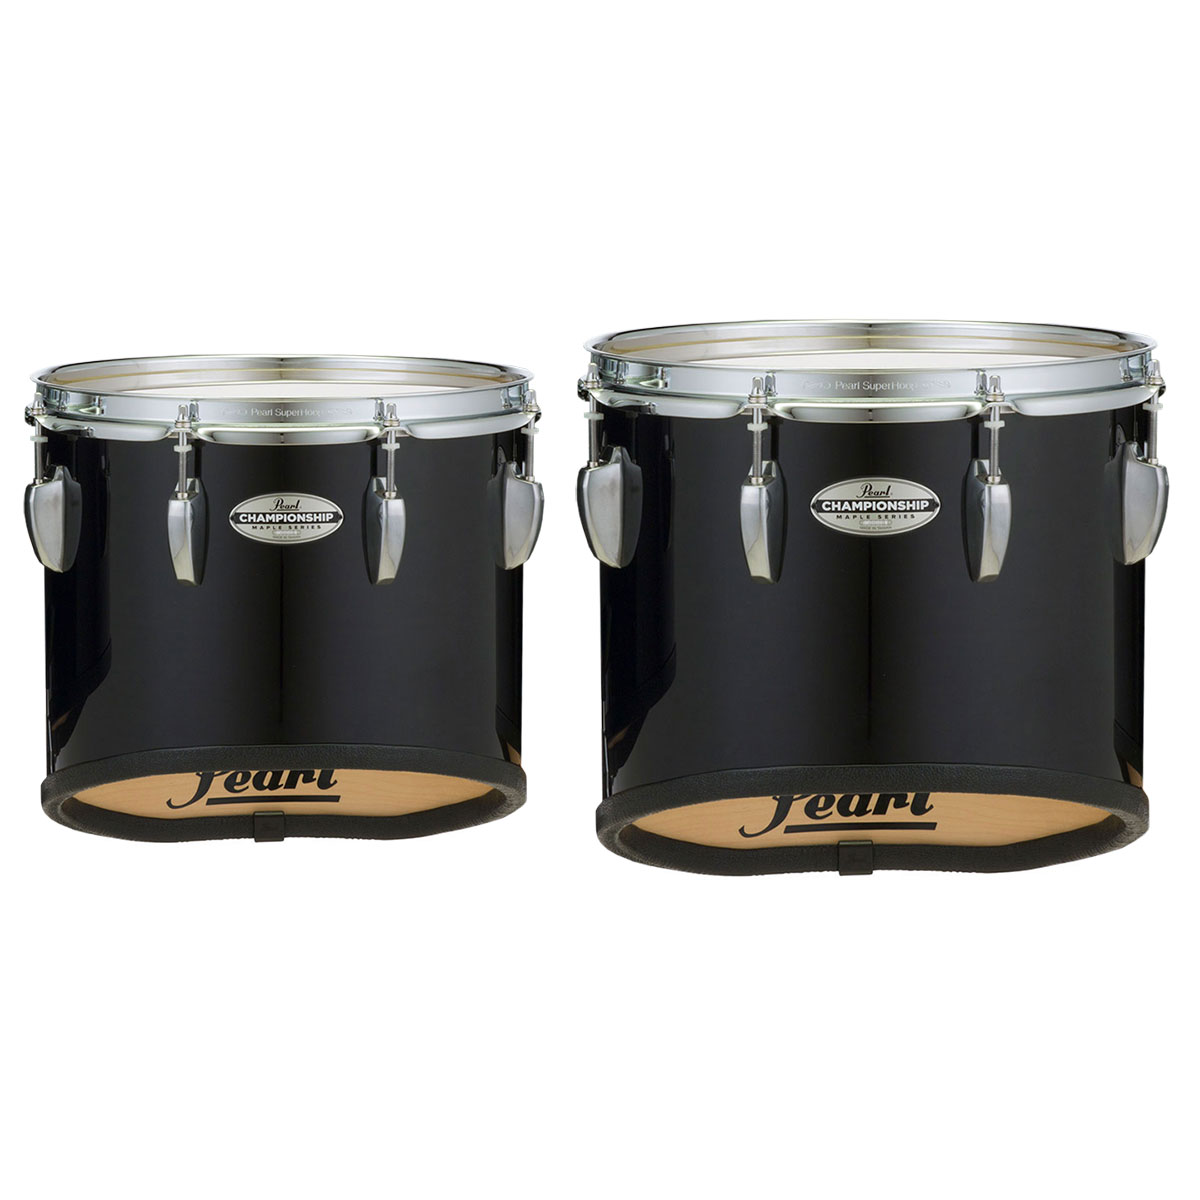 "Pearl 6"" & 8"" PMTM Championship Maple Individual Marching Tenor Drums with Mounting Brackets in Wrap Finish"